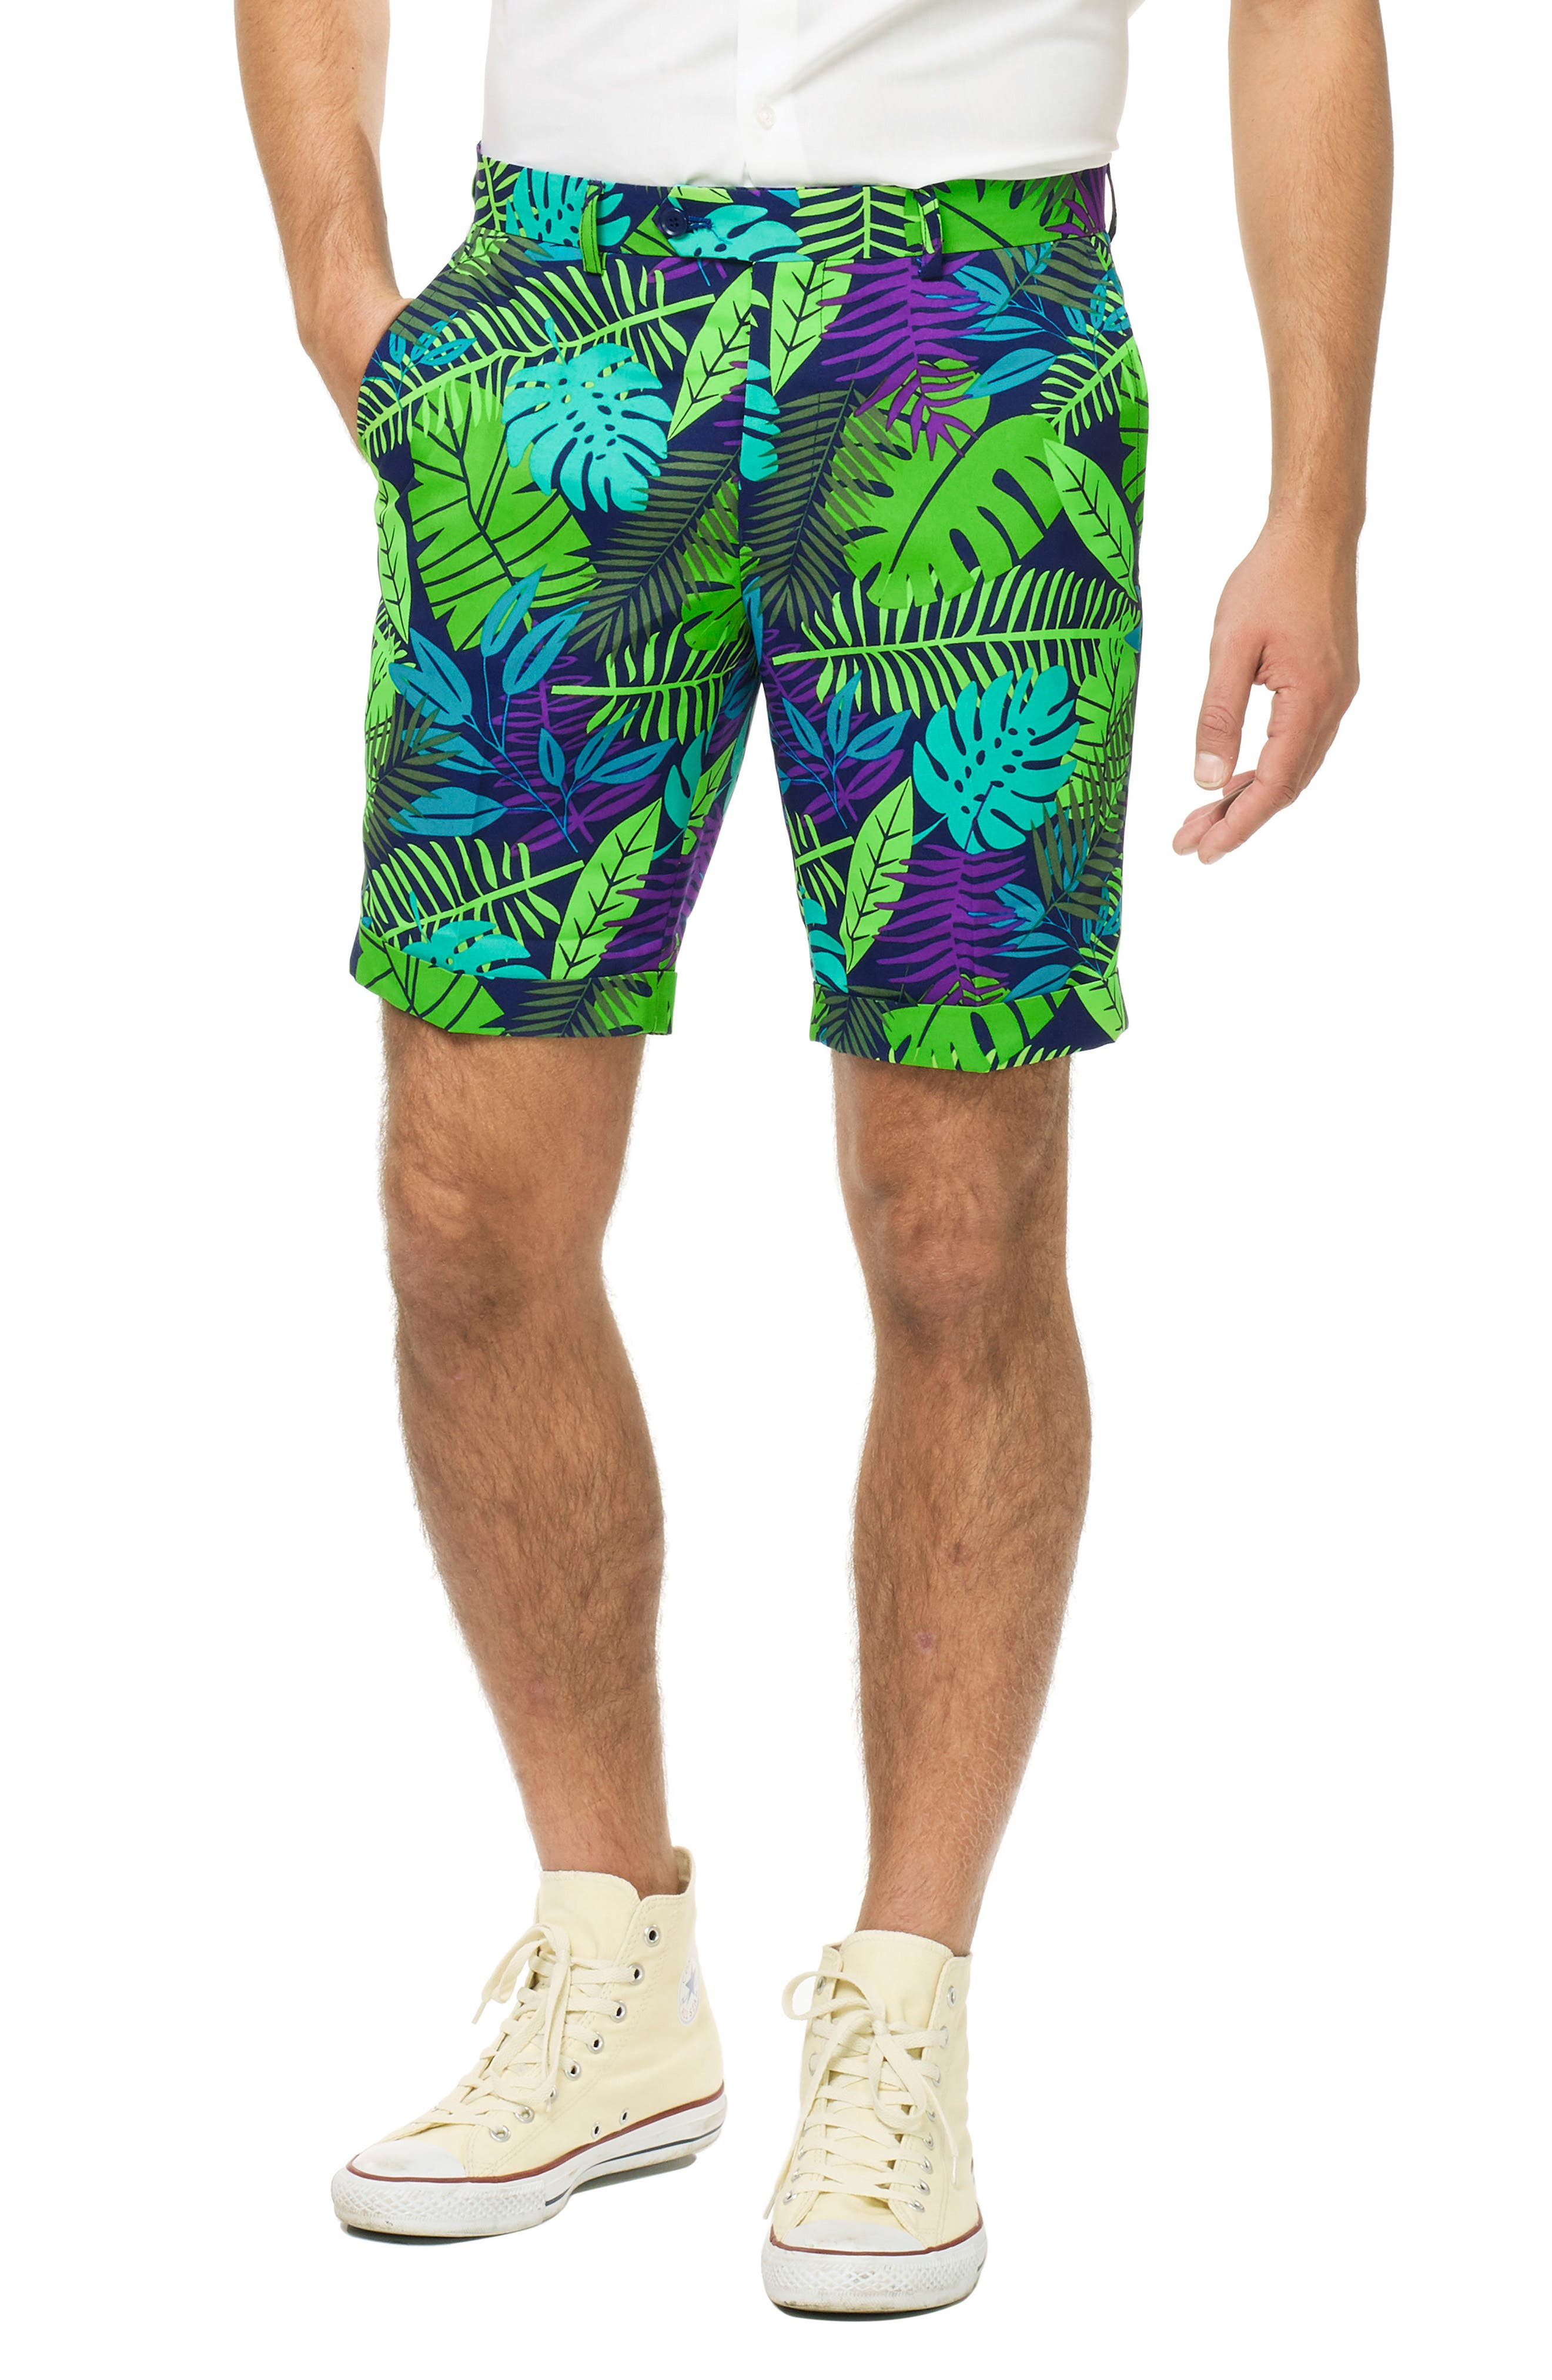 Juicy Jungle Trim Fit Two-Piece Short Suit with Tie,                             Alternate thumbnail 3, color,                             Miscellaneous